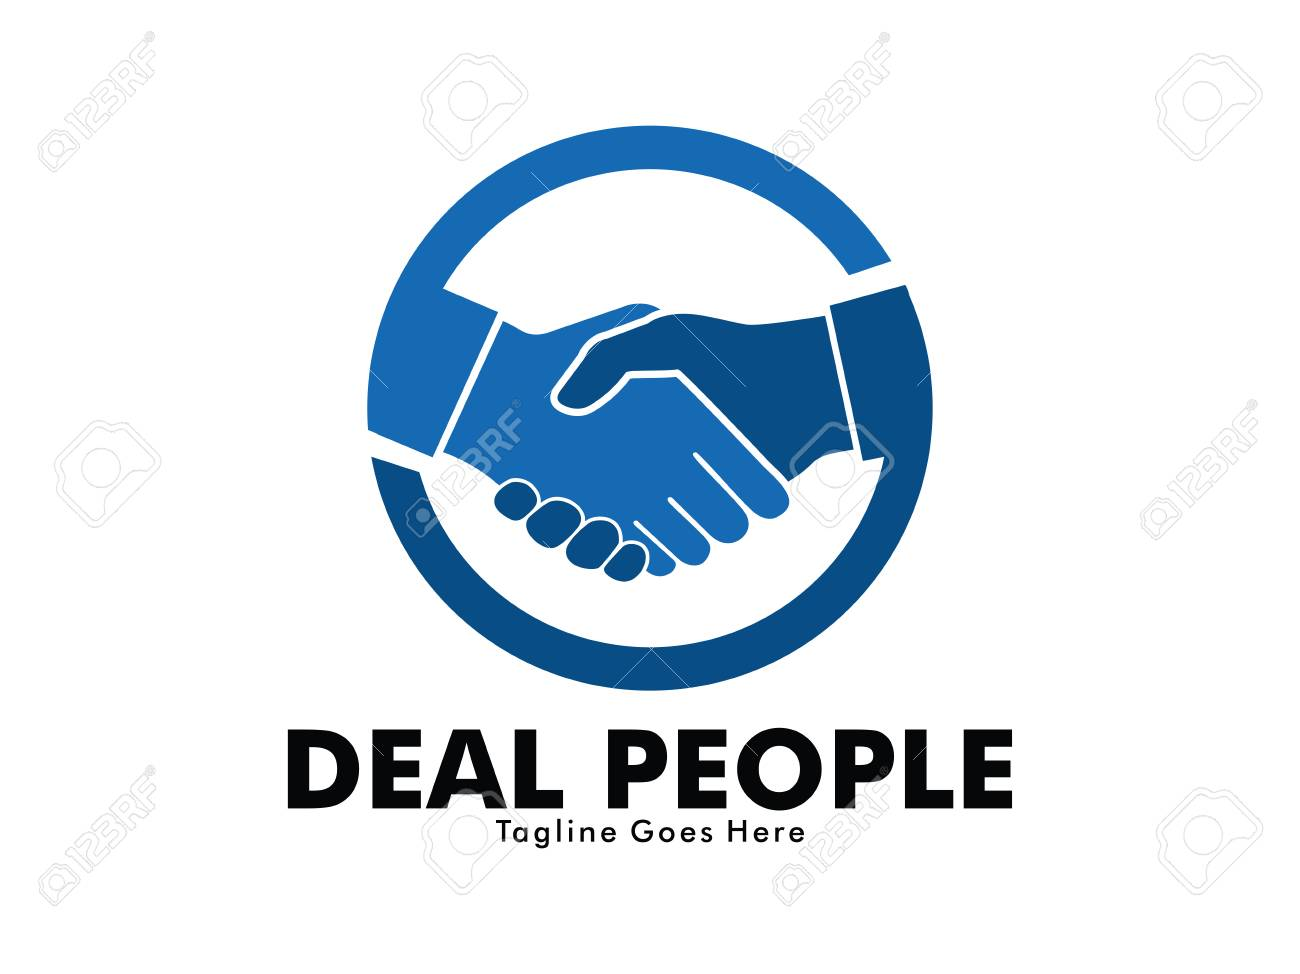 vector logo design of deal handshake sign meaning of friendship, partnership cooperation, business teamwork and trust - 95728048